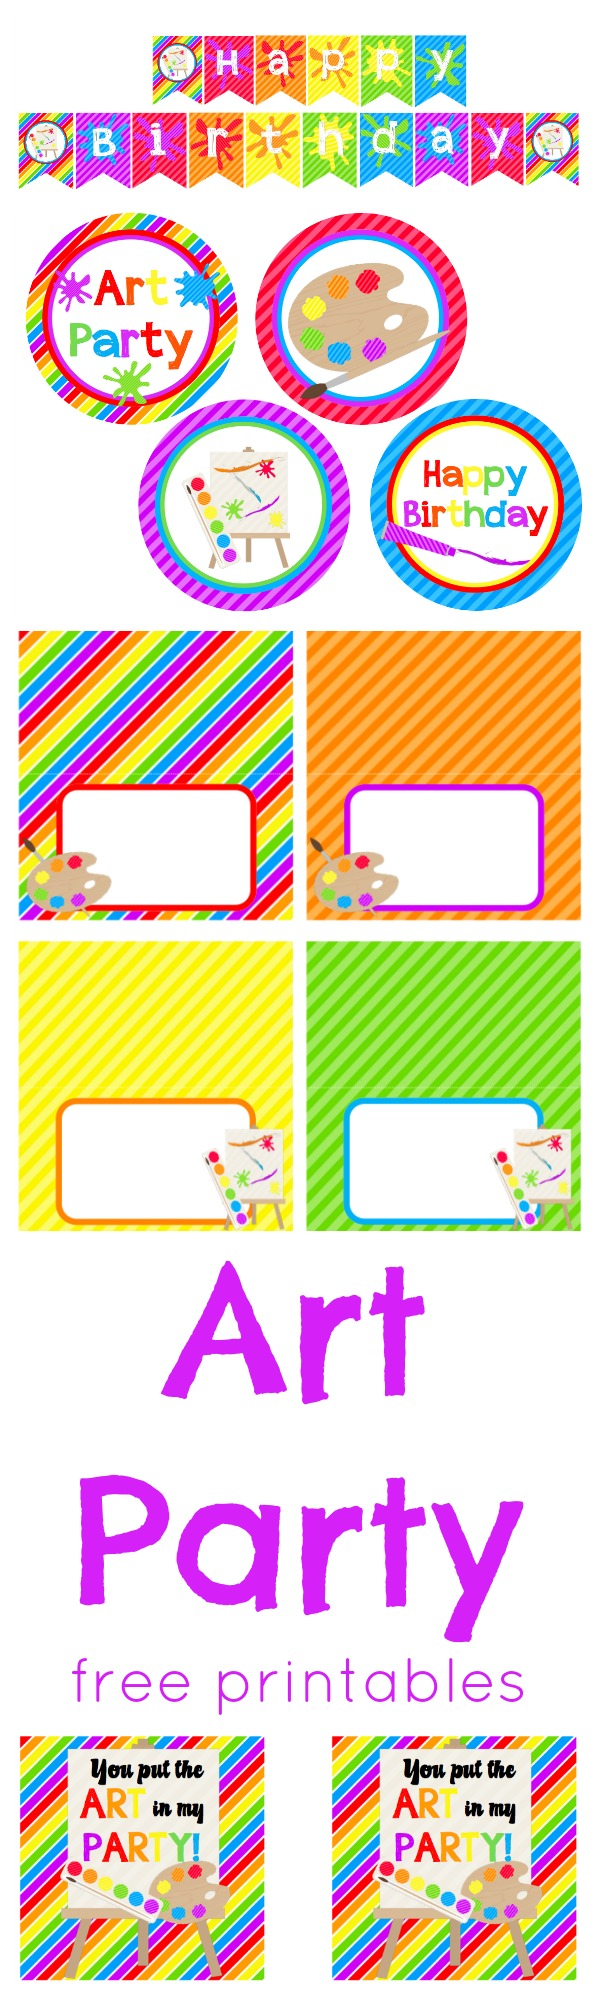 free printable birthday party labels ; Art%2520Party%2520Free%2520Printables%2520PIN_9992e570-d489-4454-a49f-906f0dd71c3d